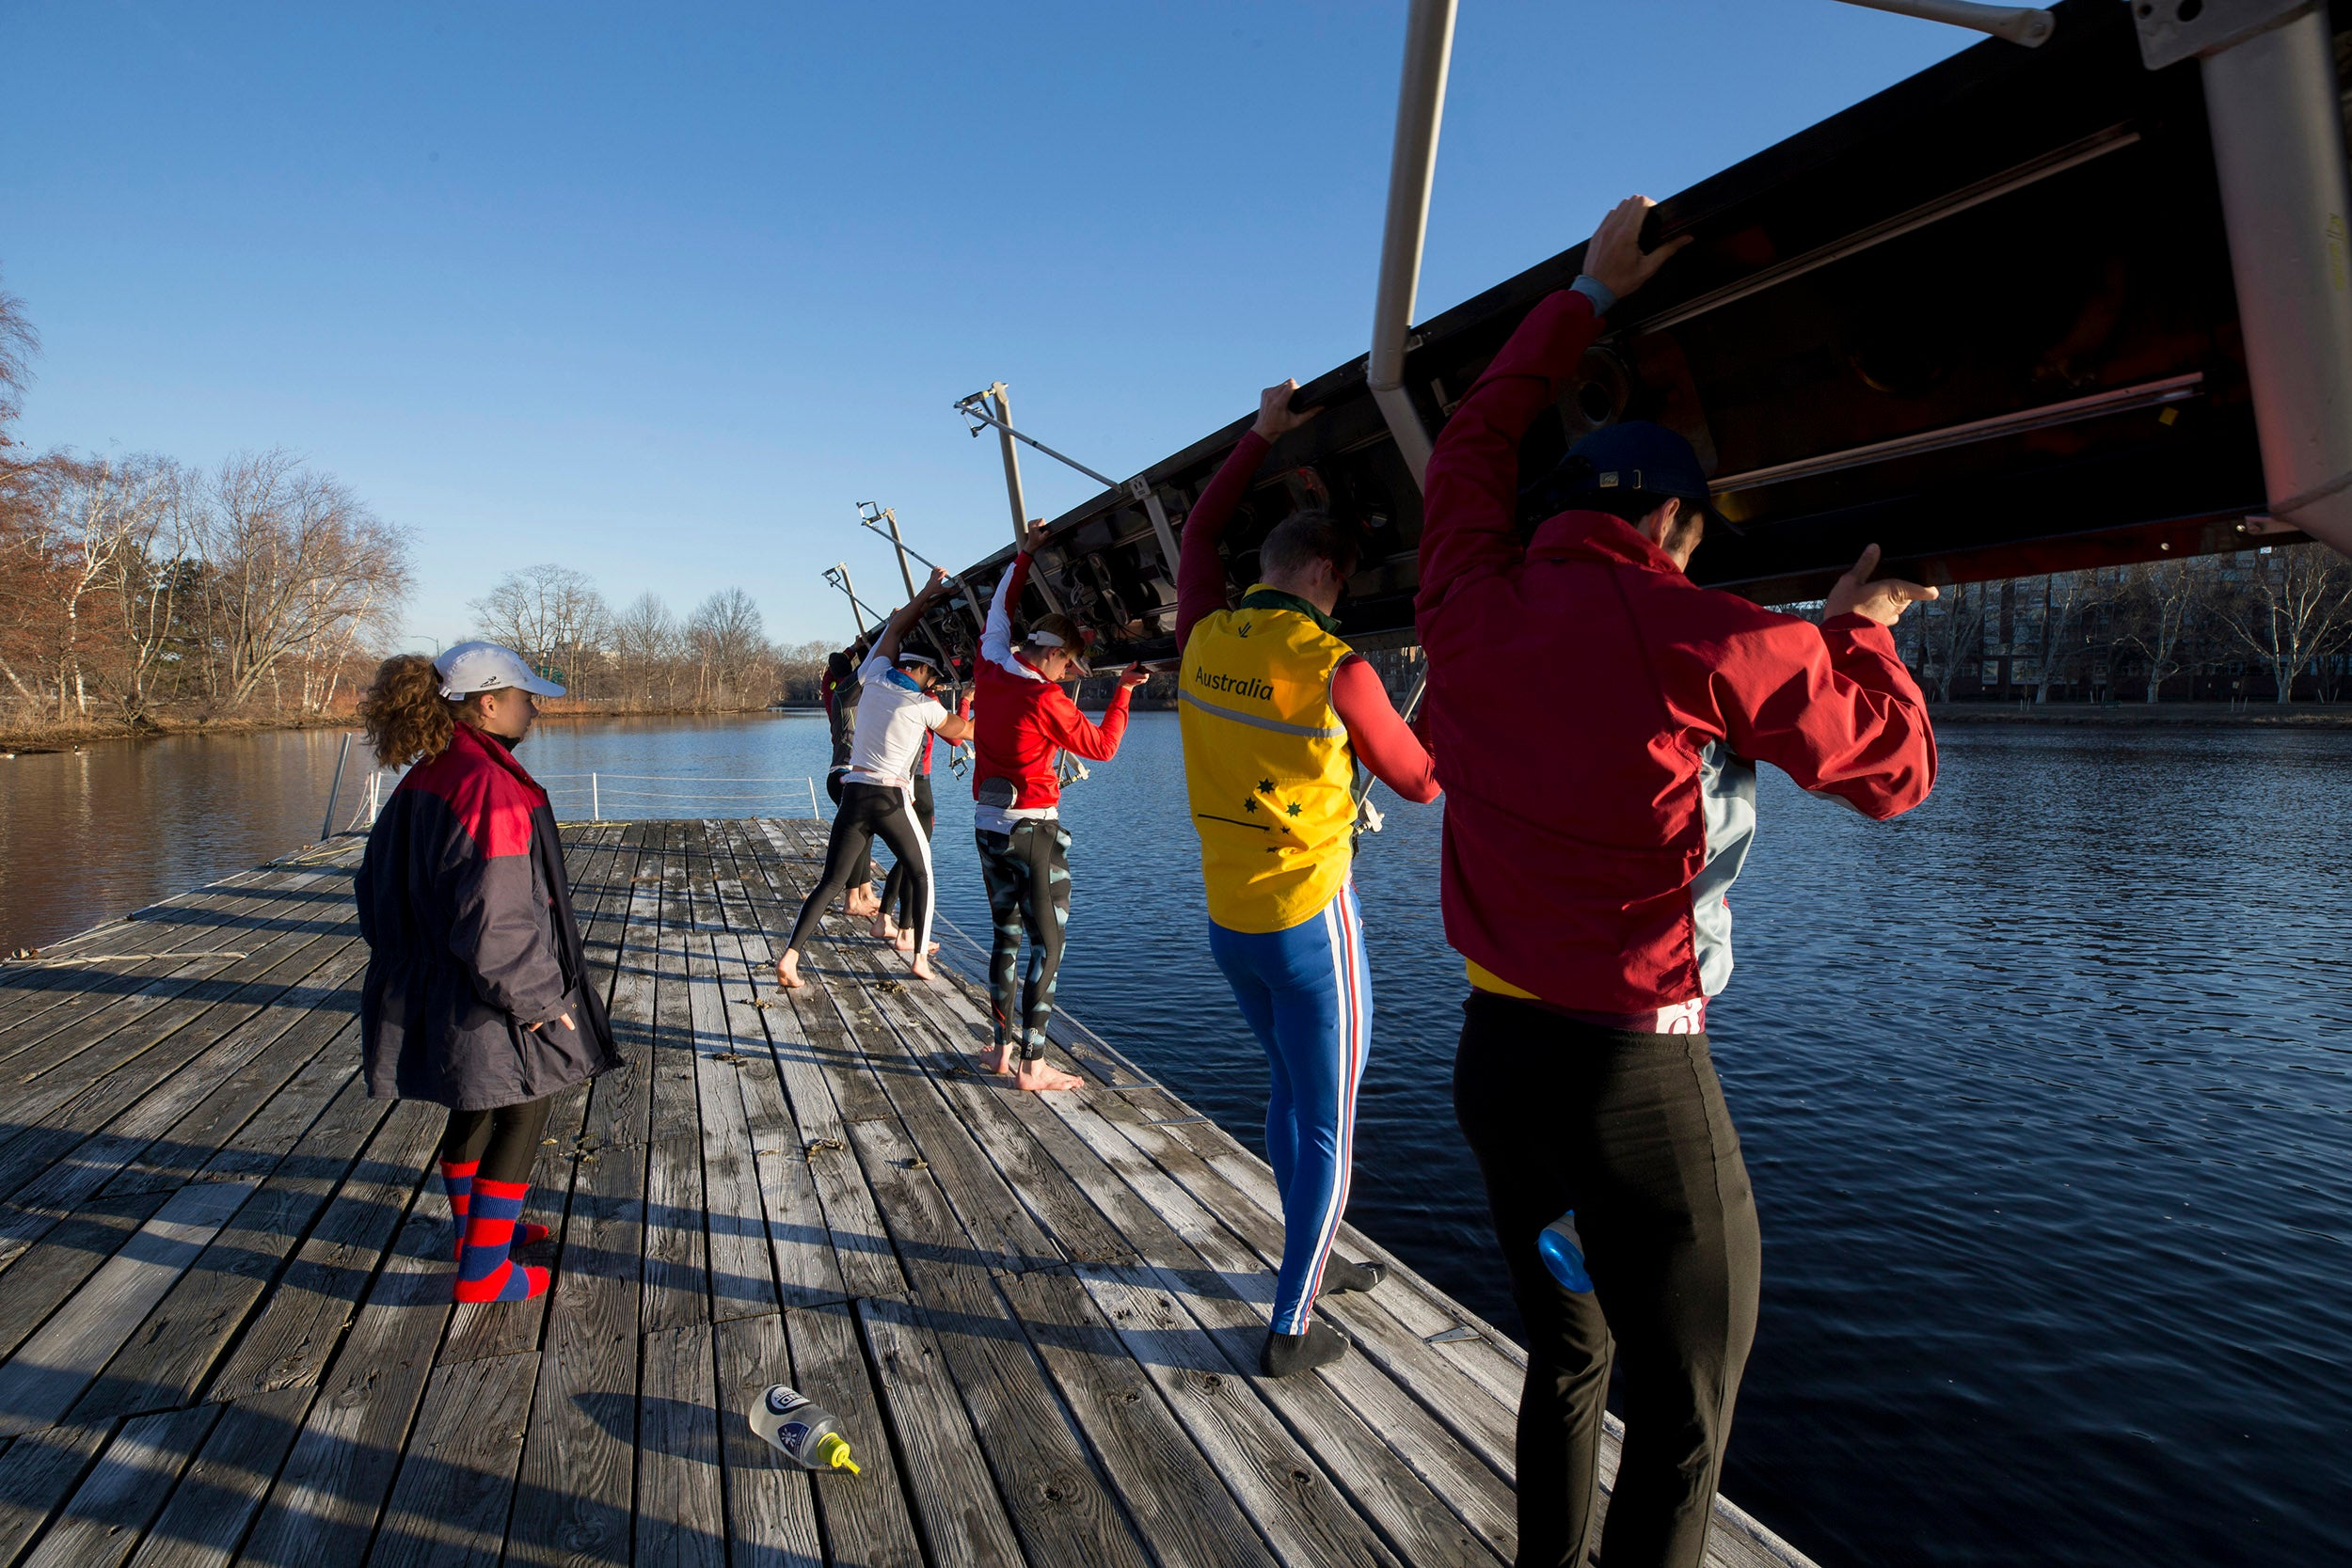 """Jennie Kunes calls out instructions to her """"eights"""" as they set their boat in the water. """"One rower putting in more effort doesn't make a measureable difference unless the entire crew does it with them, and the coxswain has to be attuned to the crew's mentality and technique to keep everyone together."""""""